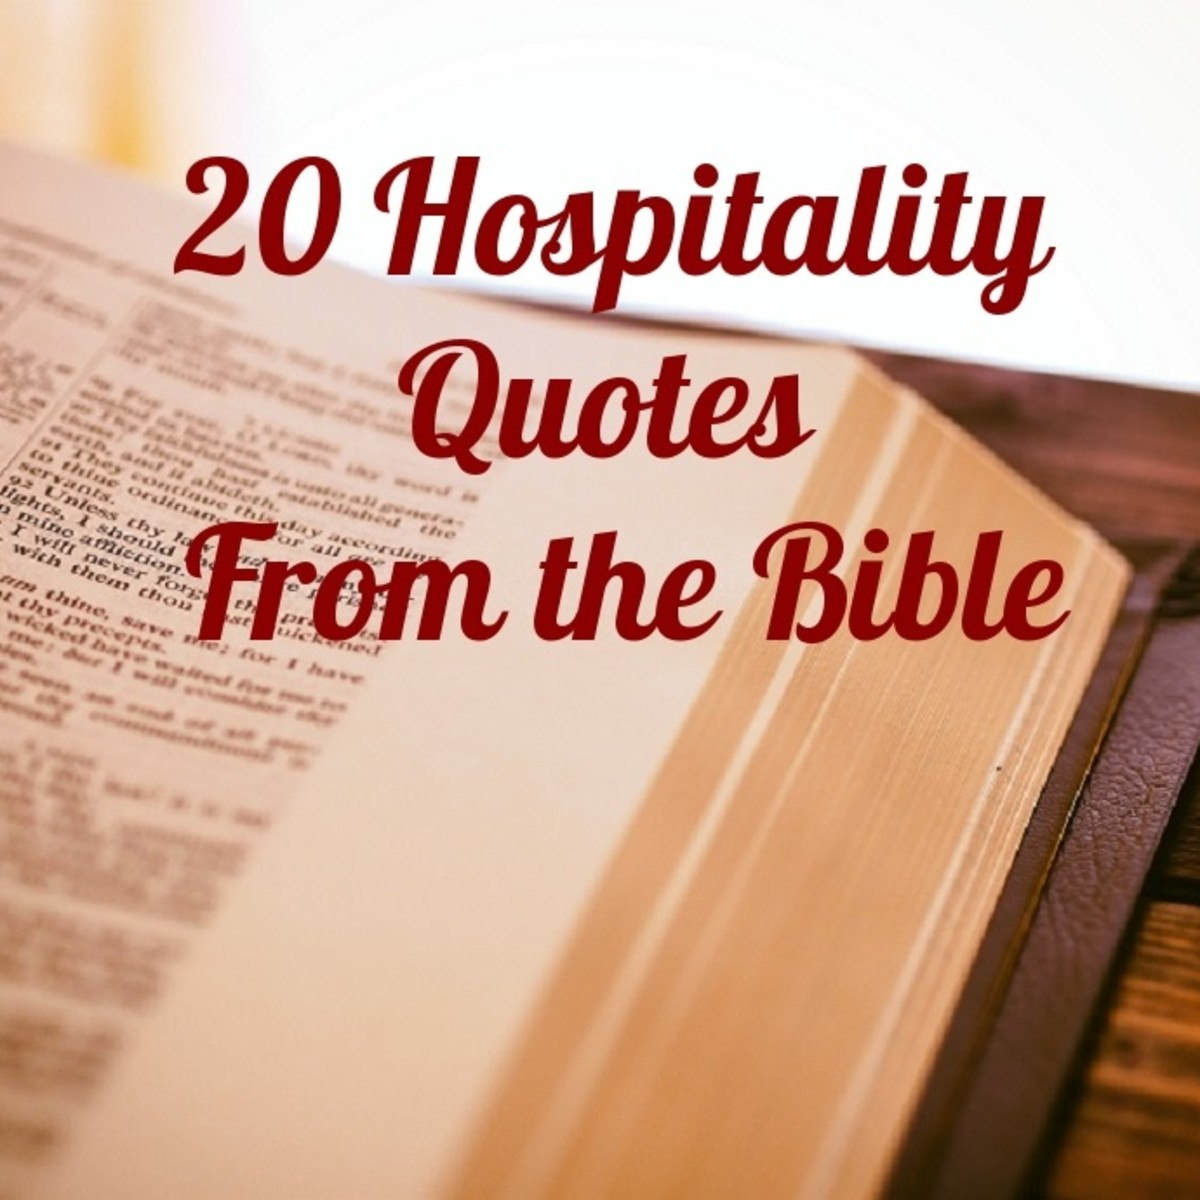 20 Hospitality Quotes from the Bible